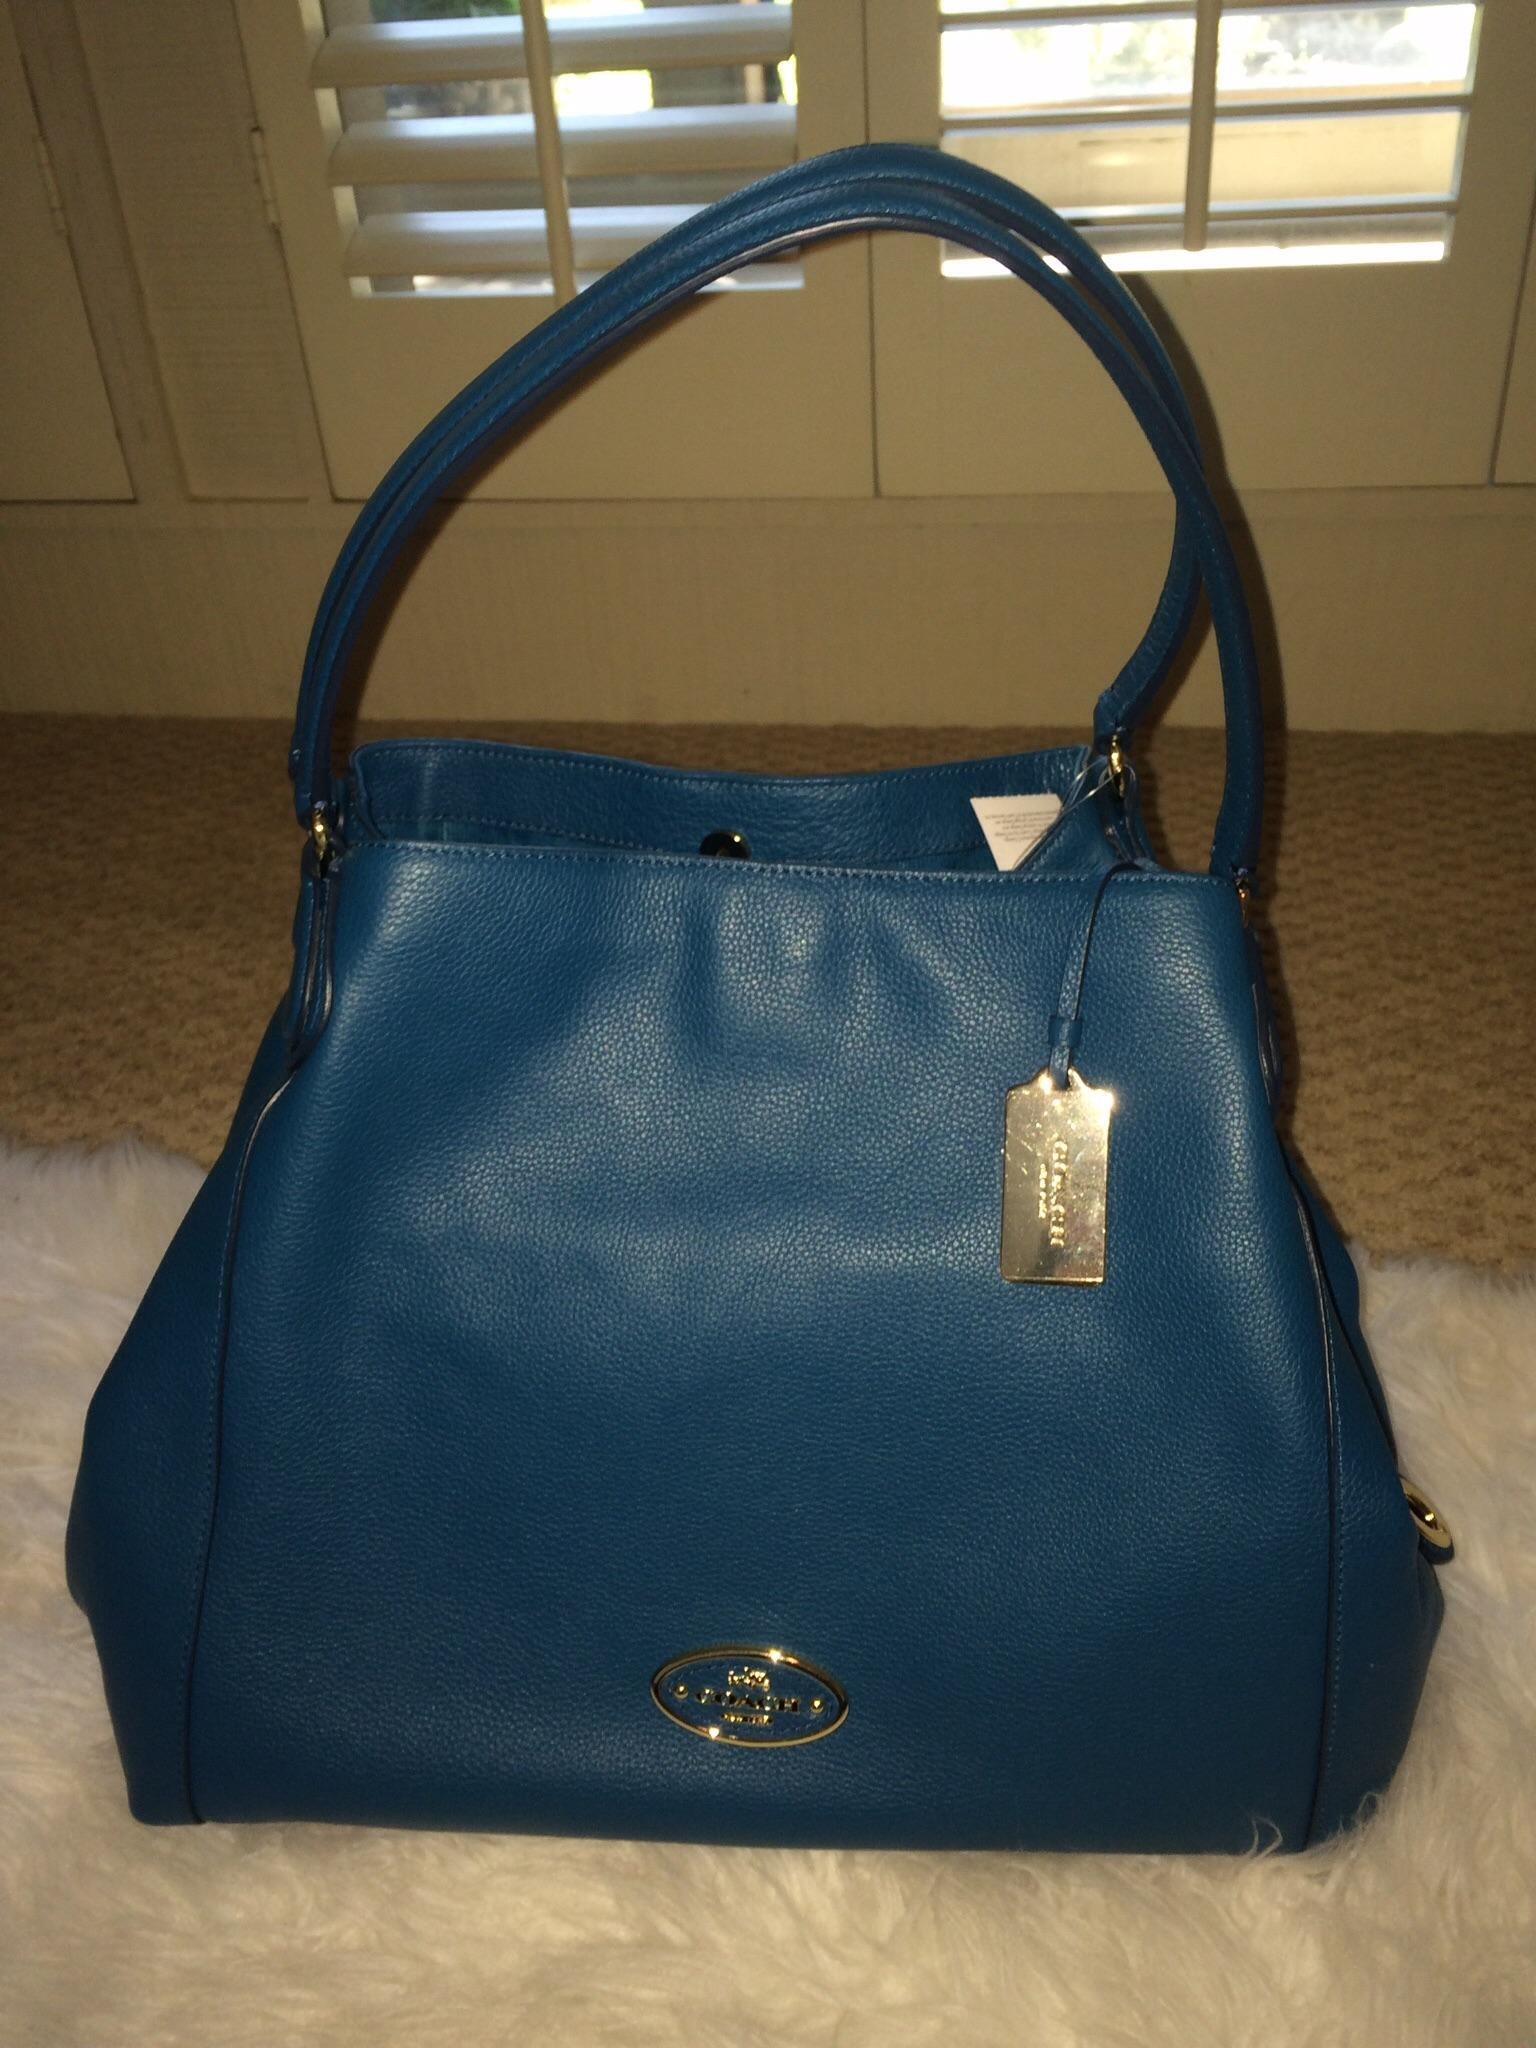 4b9a7b4a0b11 ... czech coach edie leather pebbled pleather shoulder tote in teal.  12345678 ecab5 a5262